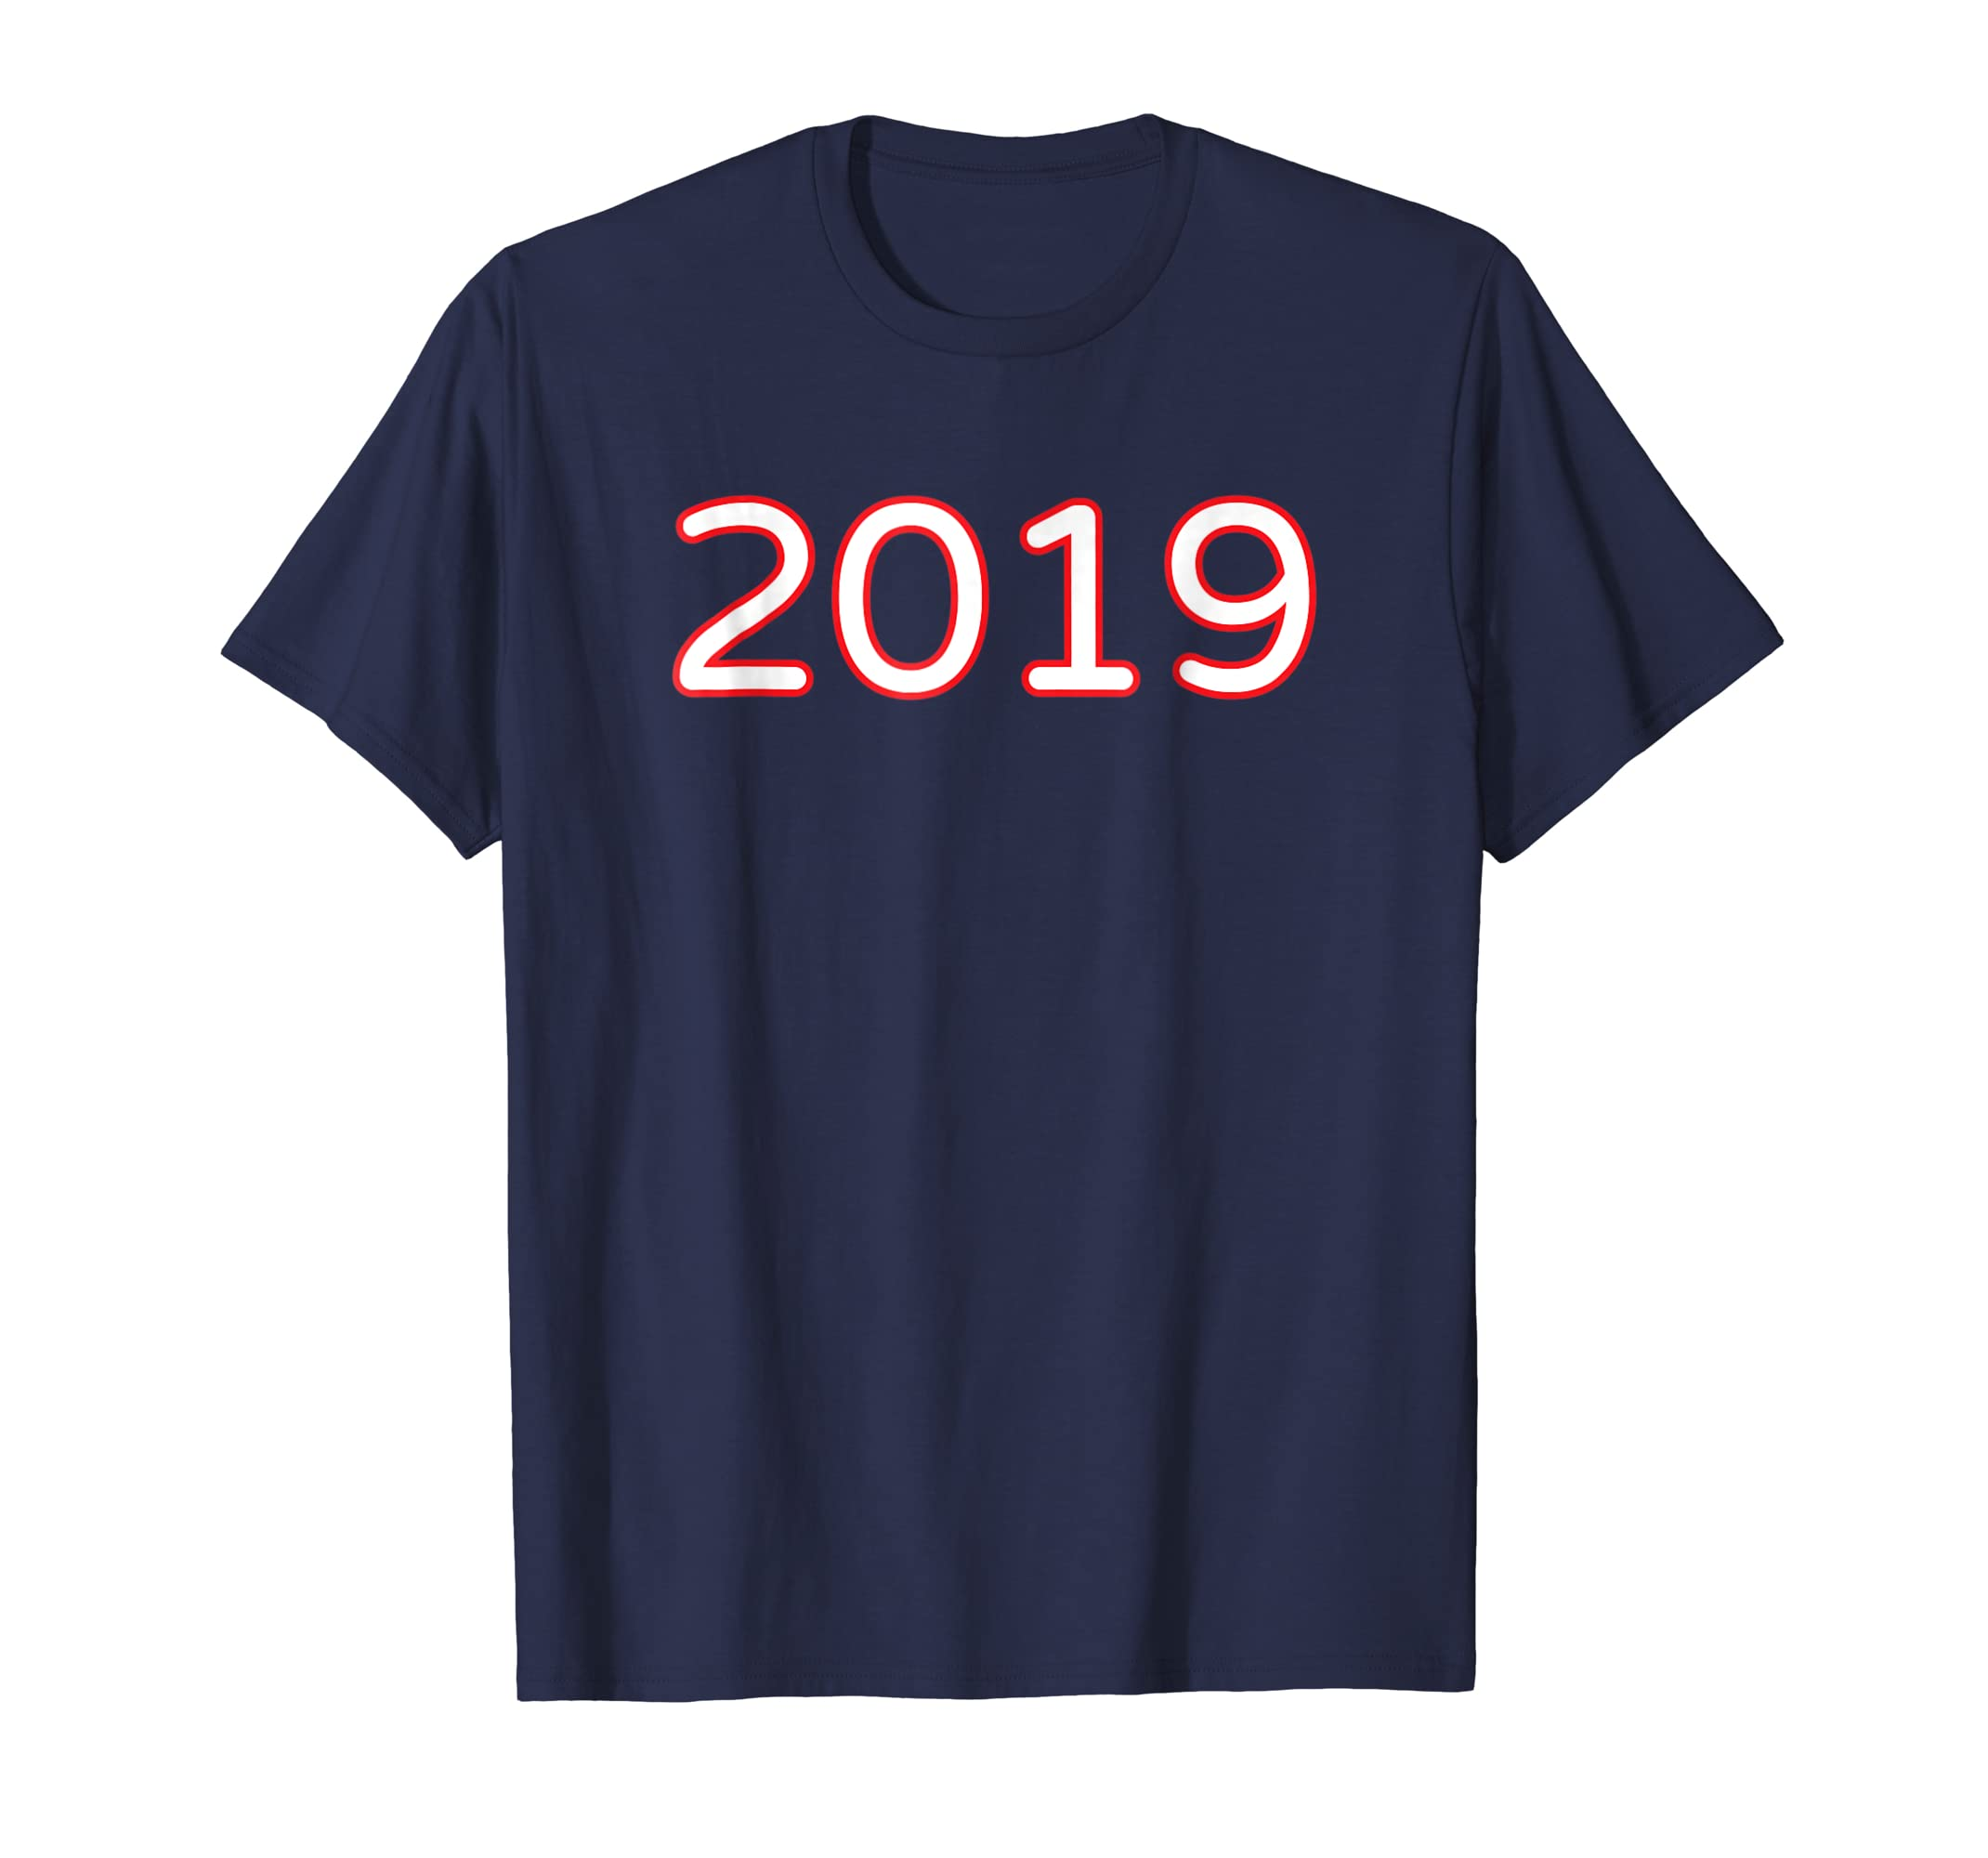 2019 T Shirt Cool Welcoming New Year 2019 Novelty Gift Tee-azvn